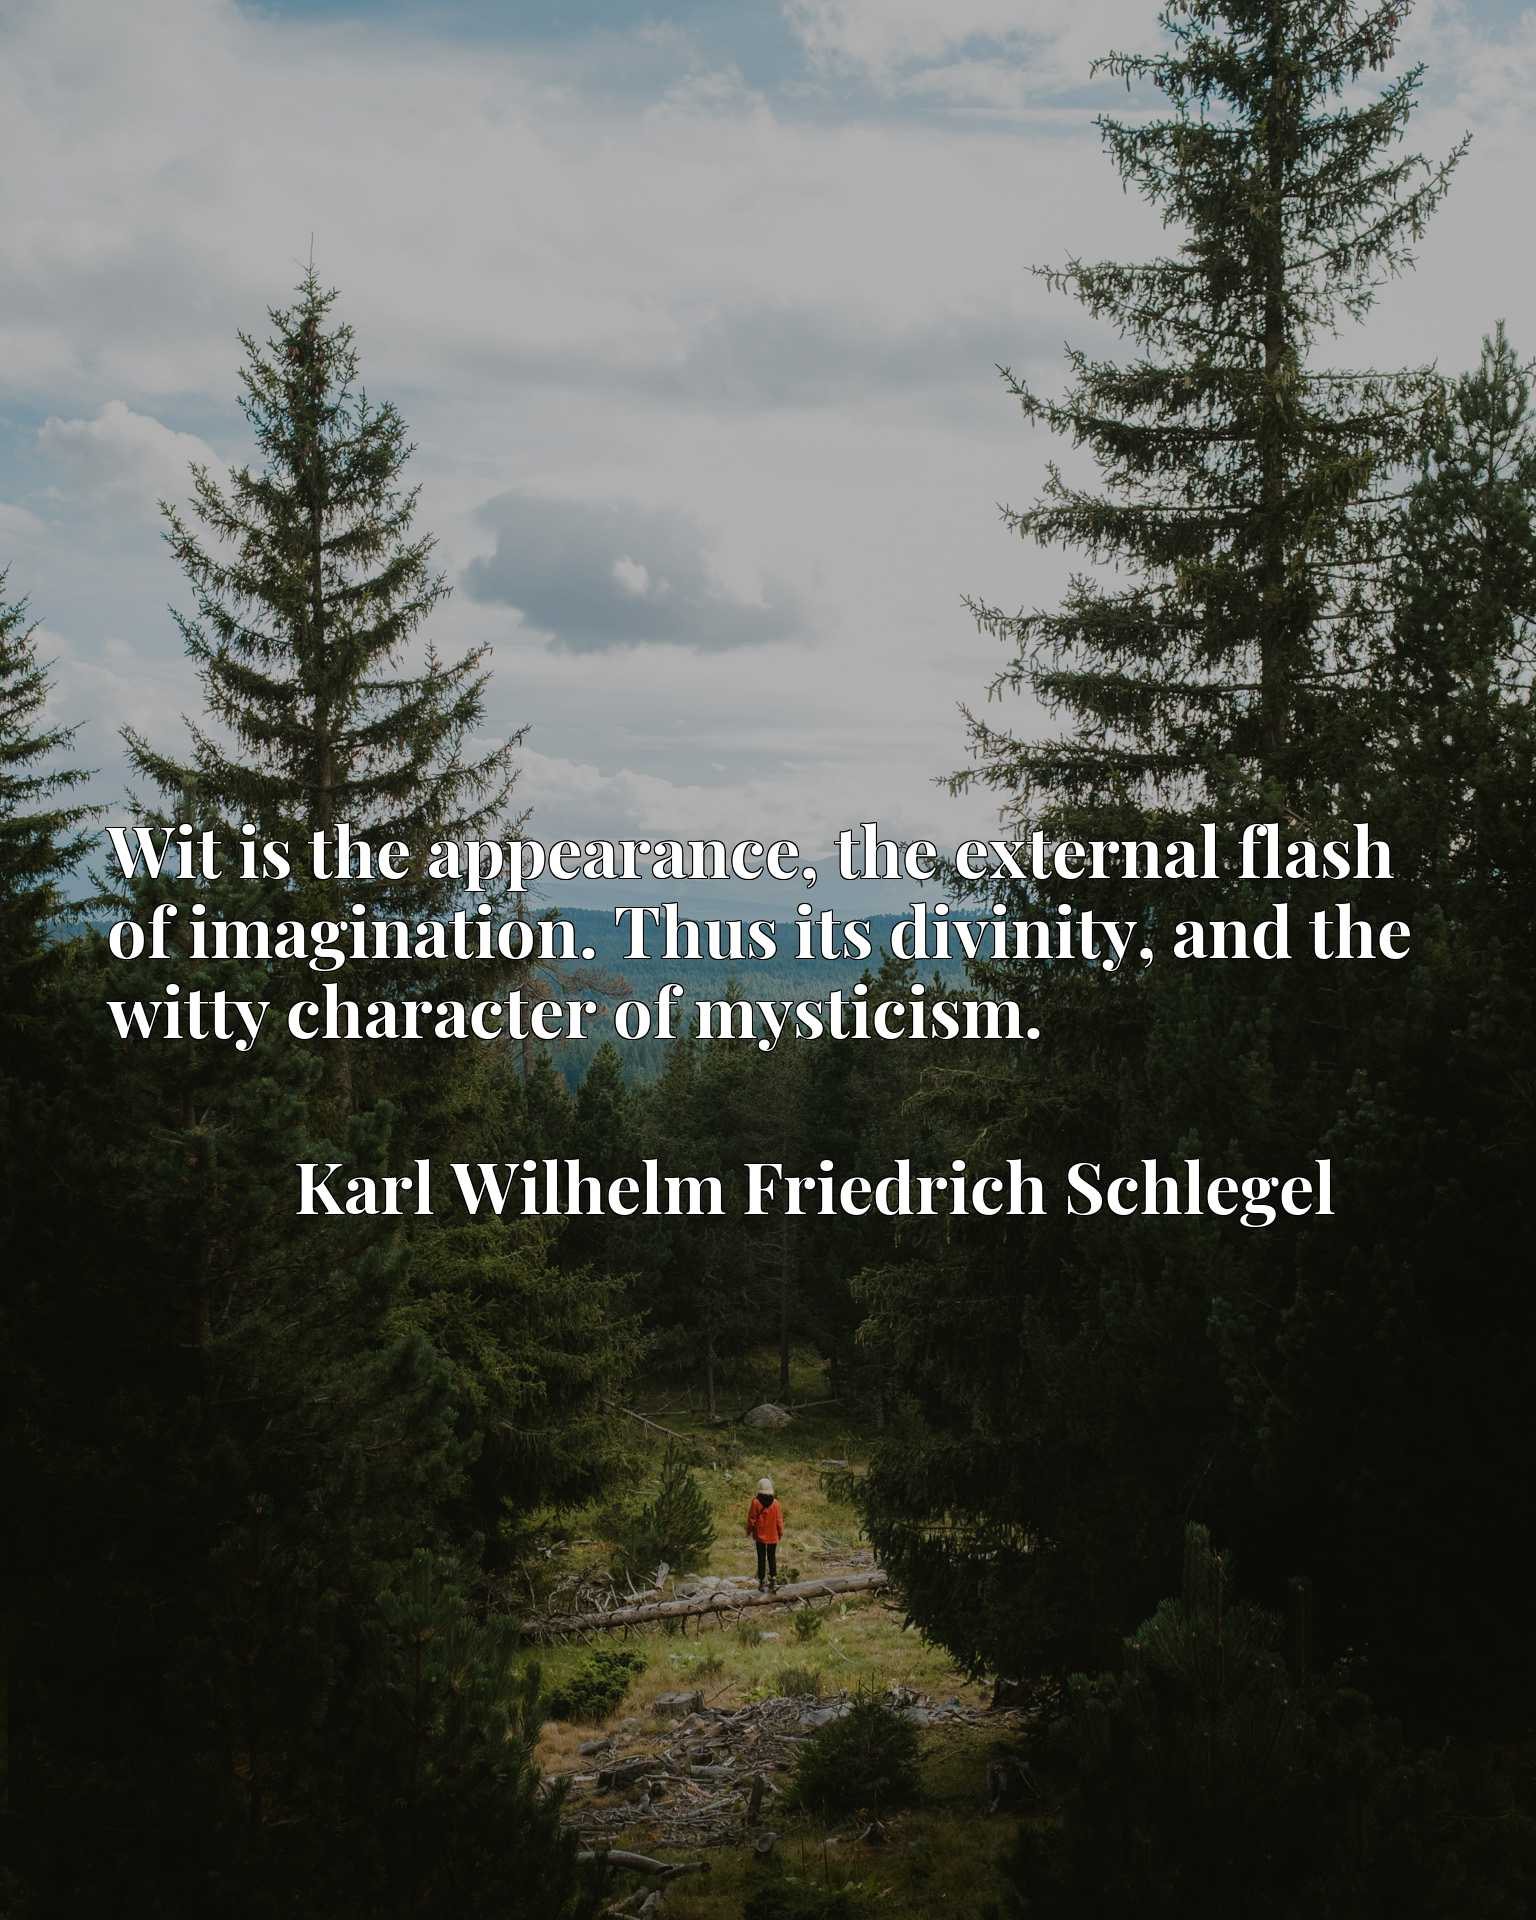 Quote Picture :Wit is the appearance, the external flash of imagination. Thus its divinity, and the witty character of mysticism.